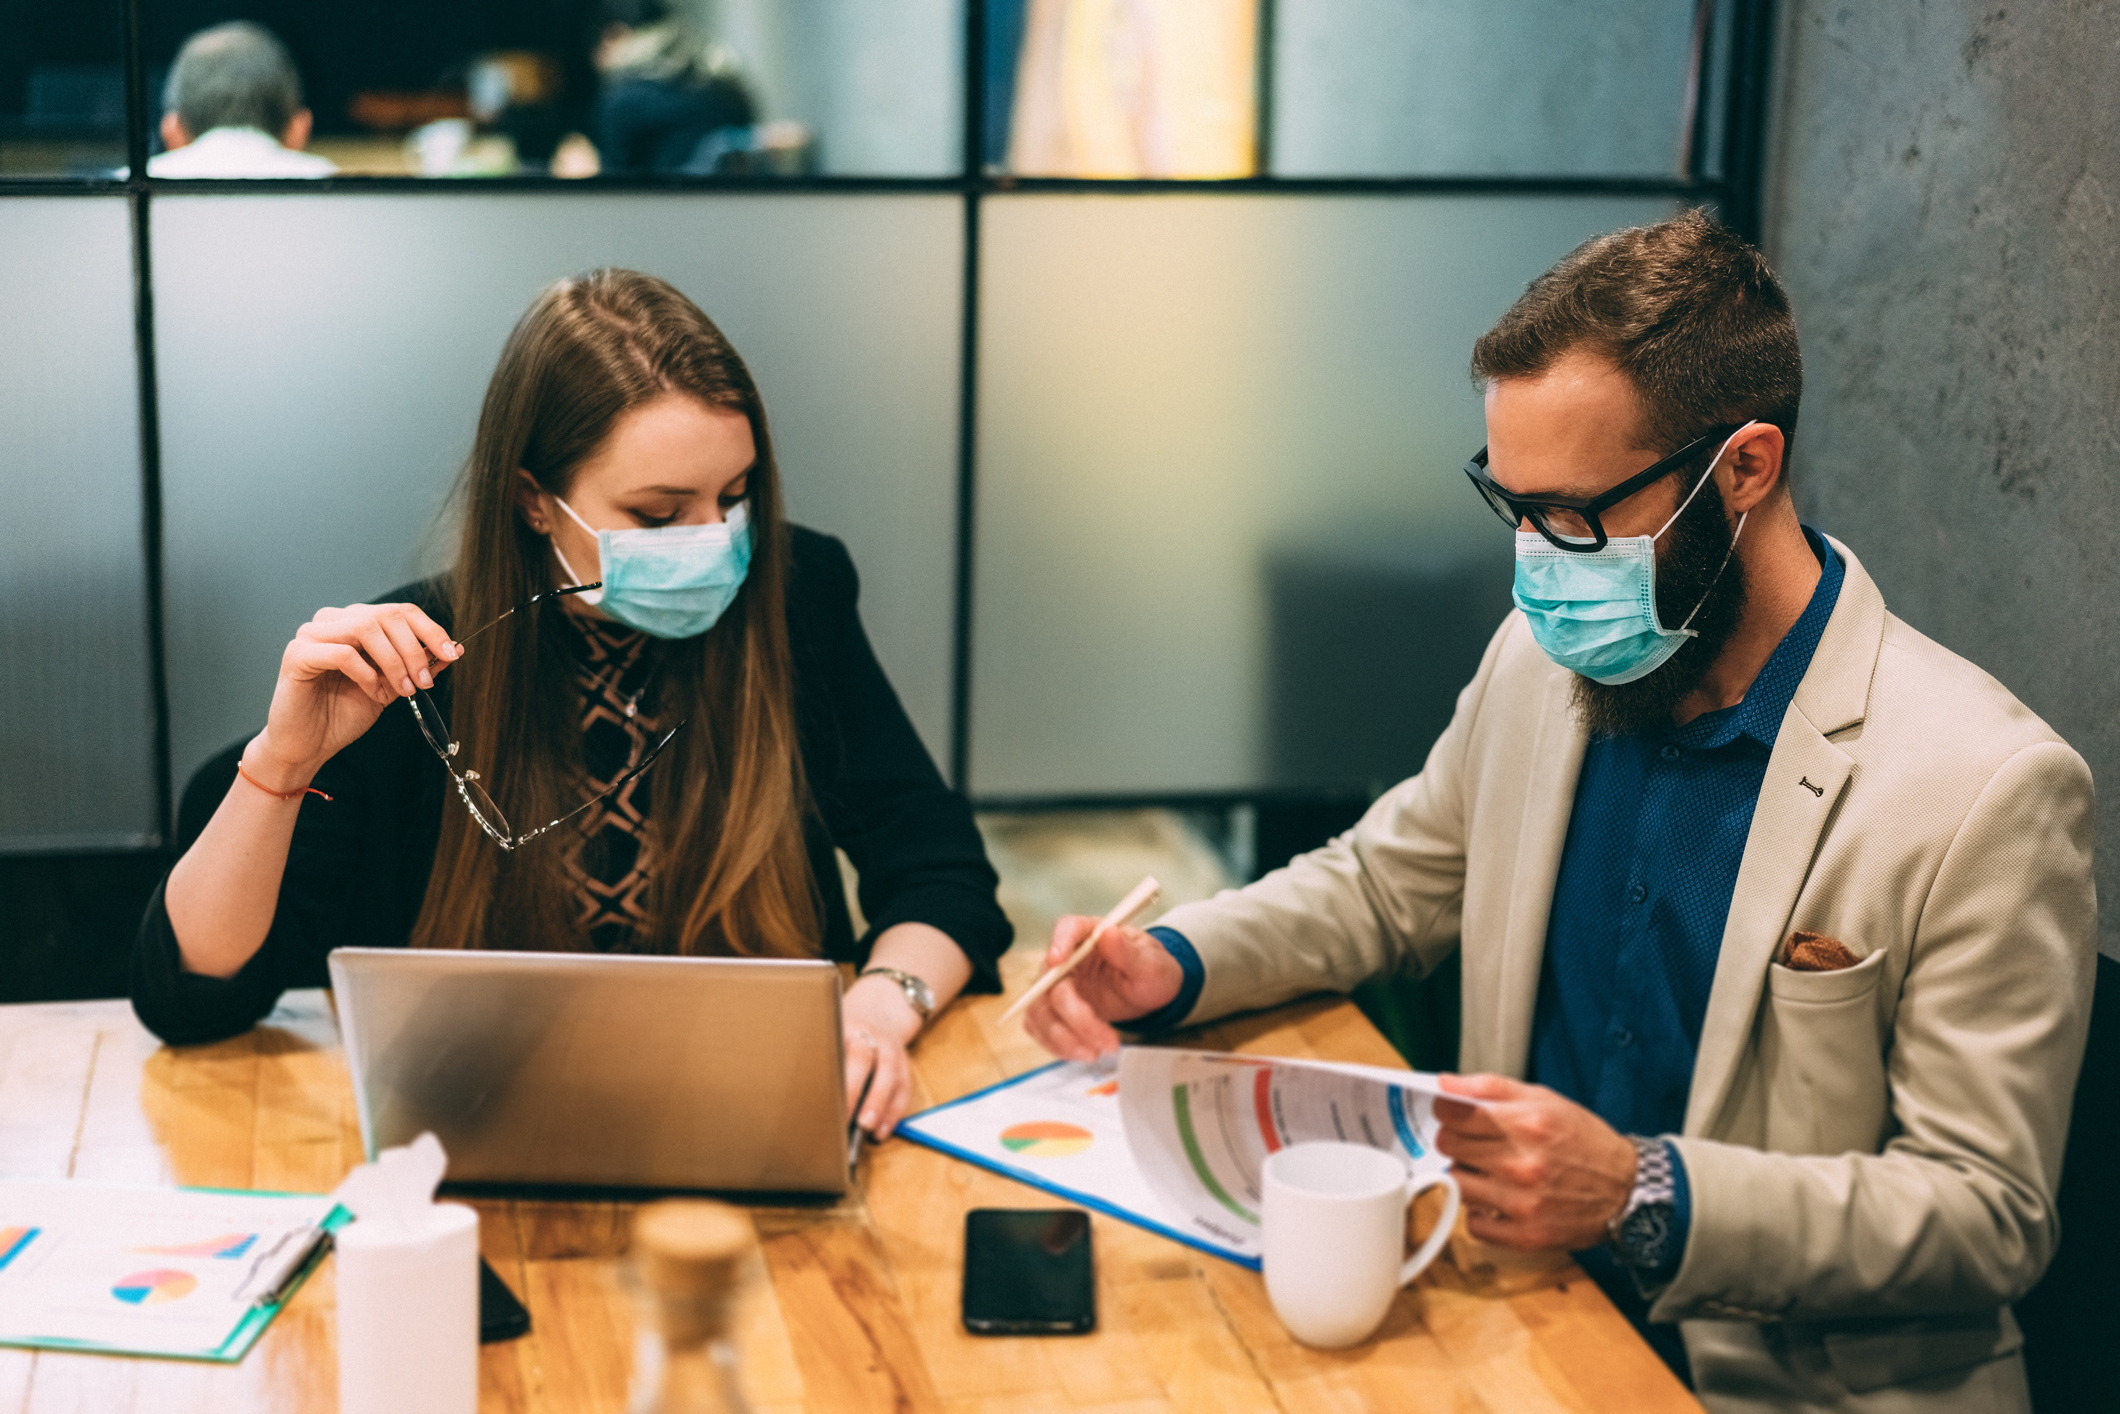 Businesspeople at work during COVID-19 pandemic as metaphor for The COVID-19 impact on banks' costs